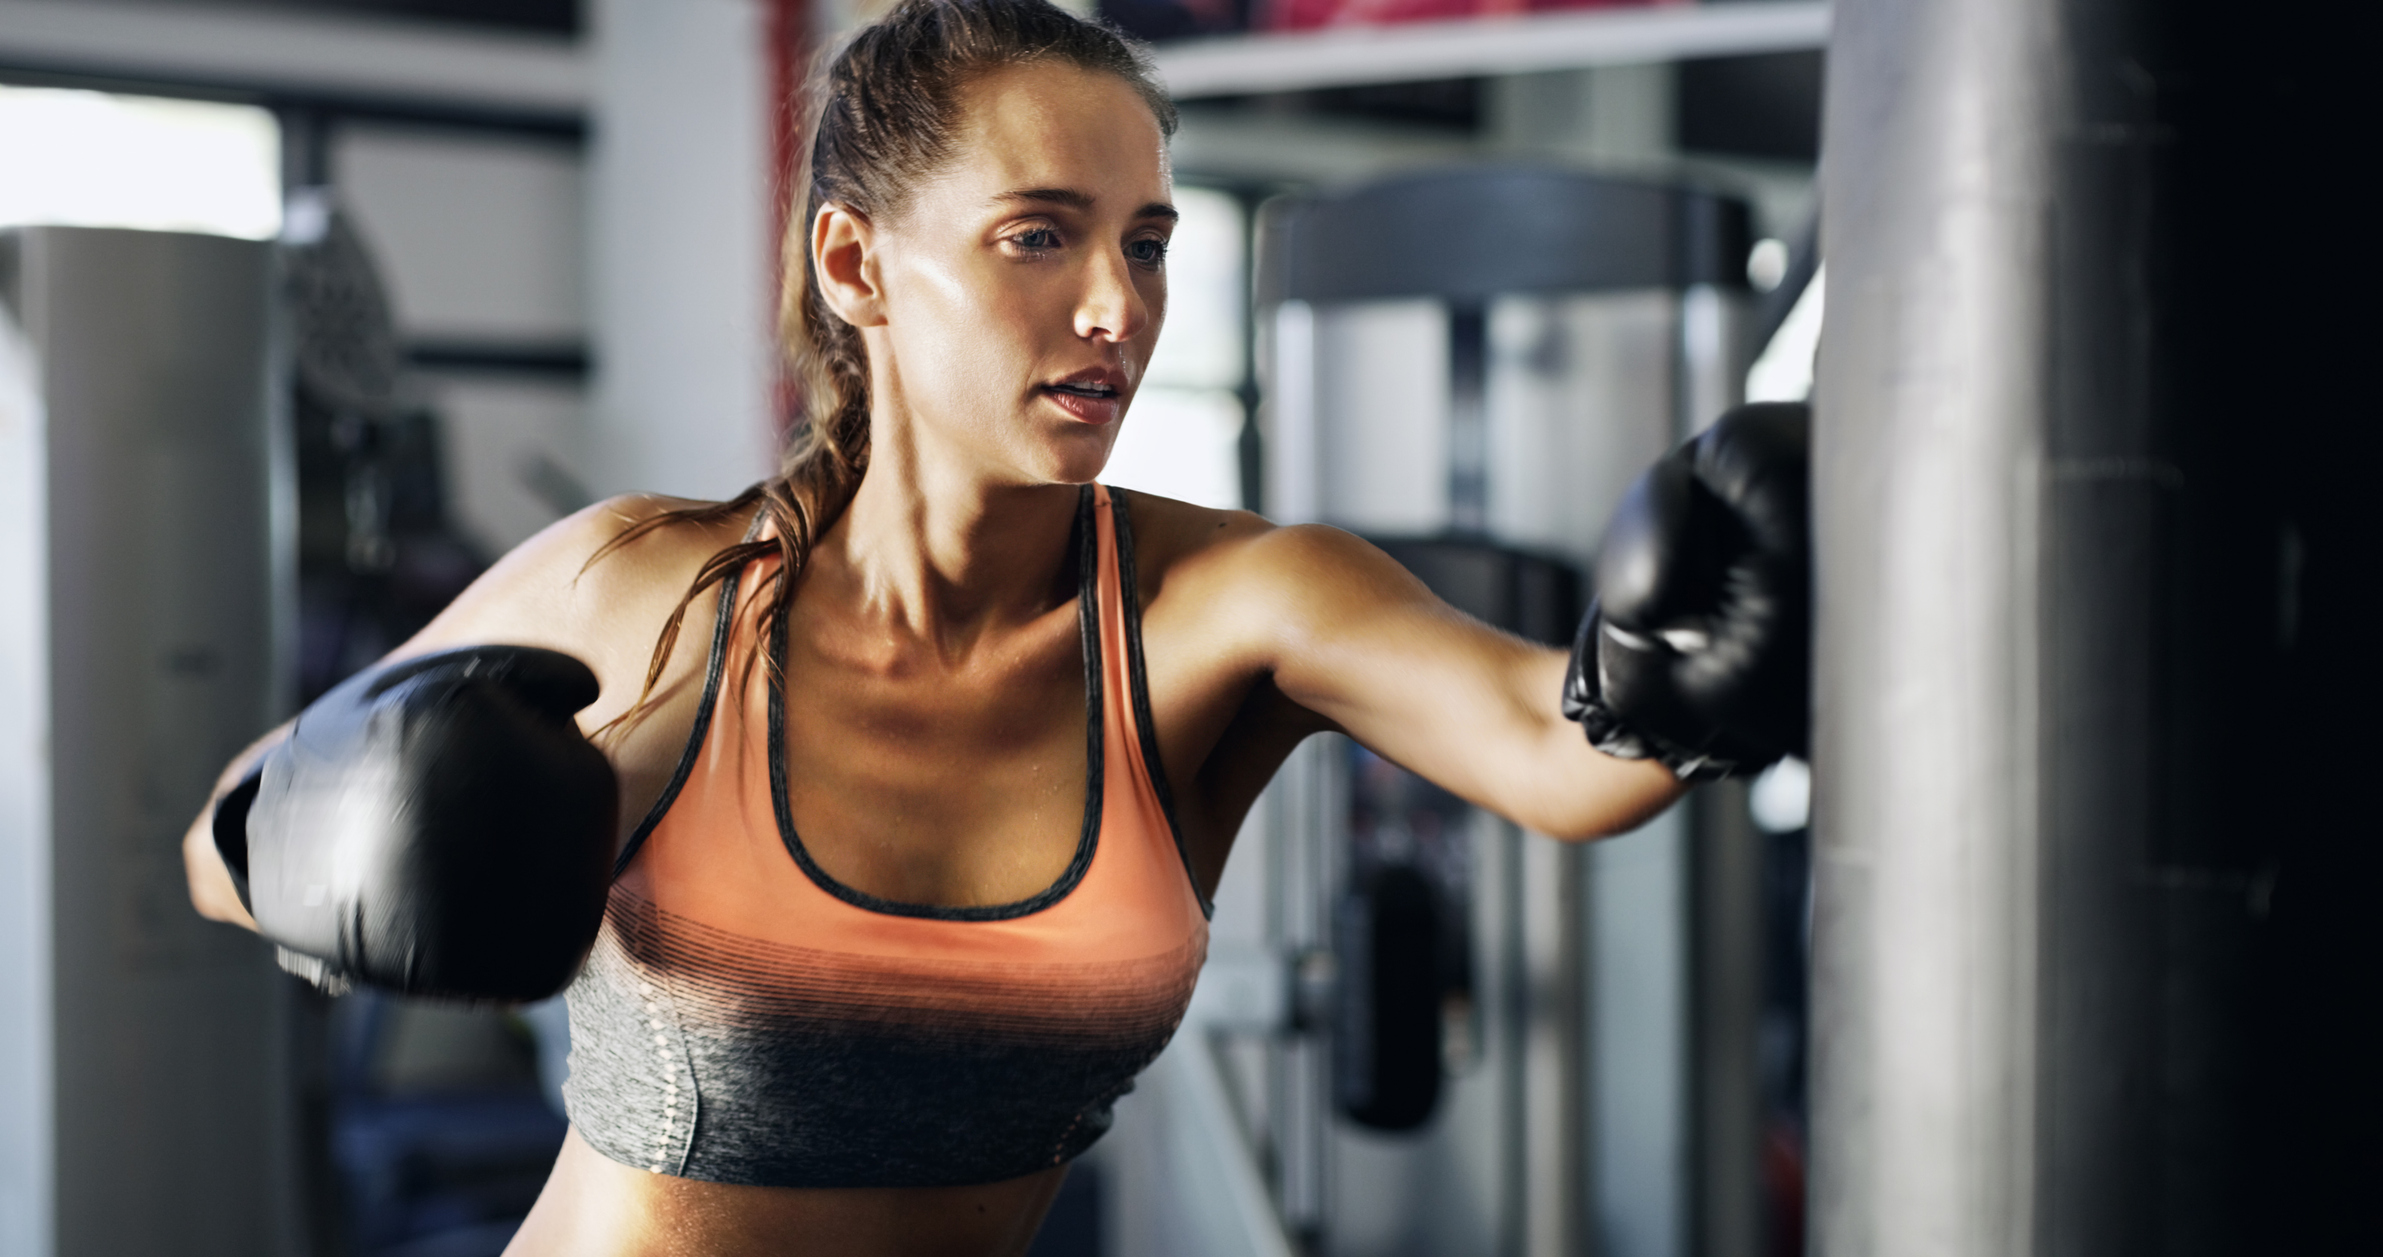 Health benefits of boxing: Six reasons you should start boxing